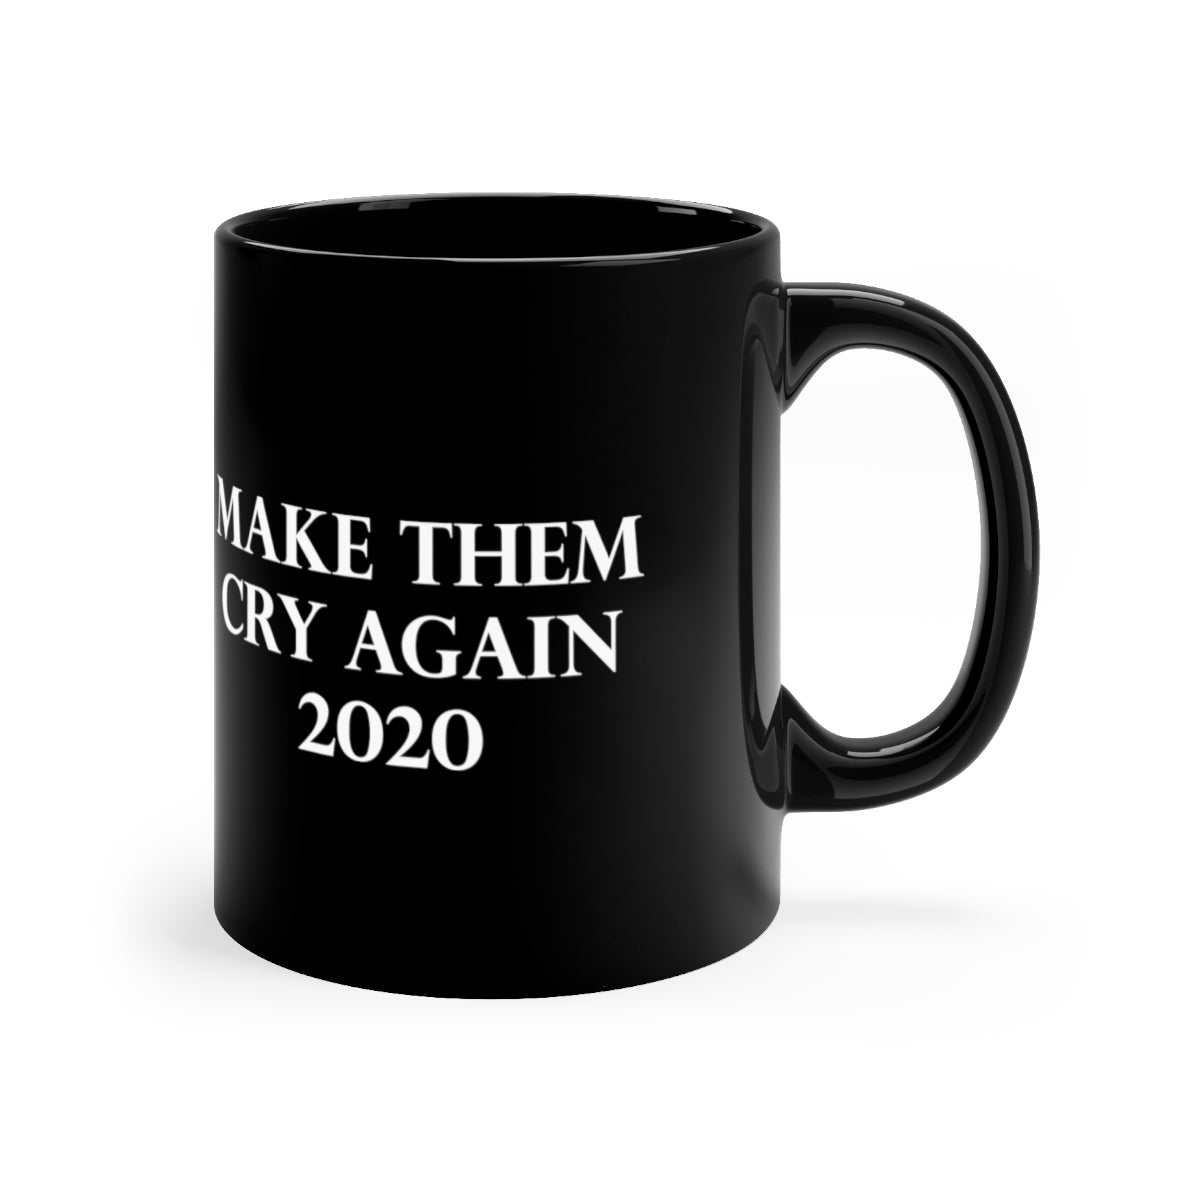 Make Them Cry Again 2020 Mug maga kag